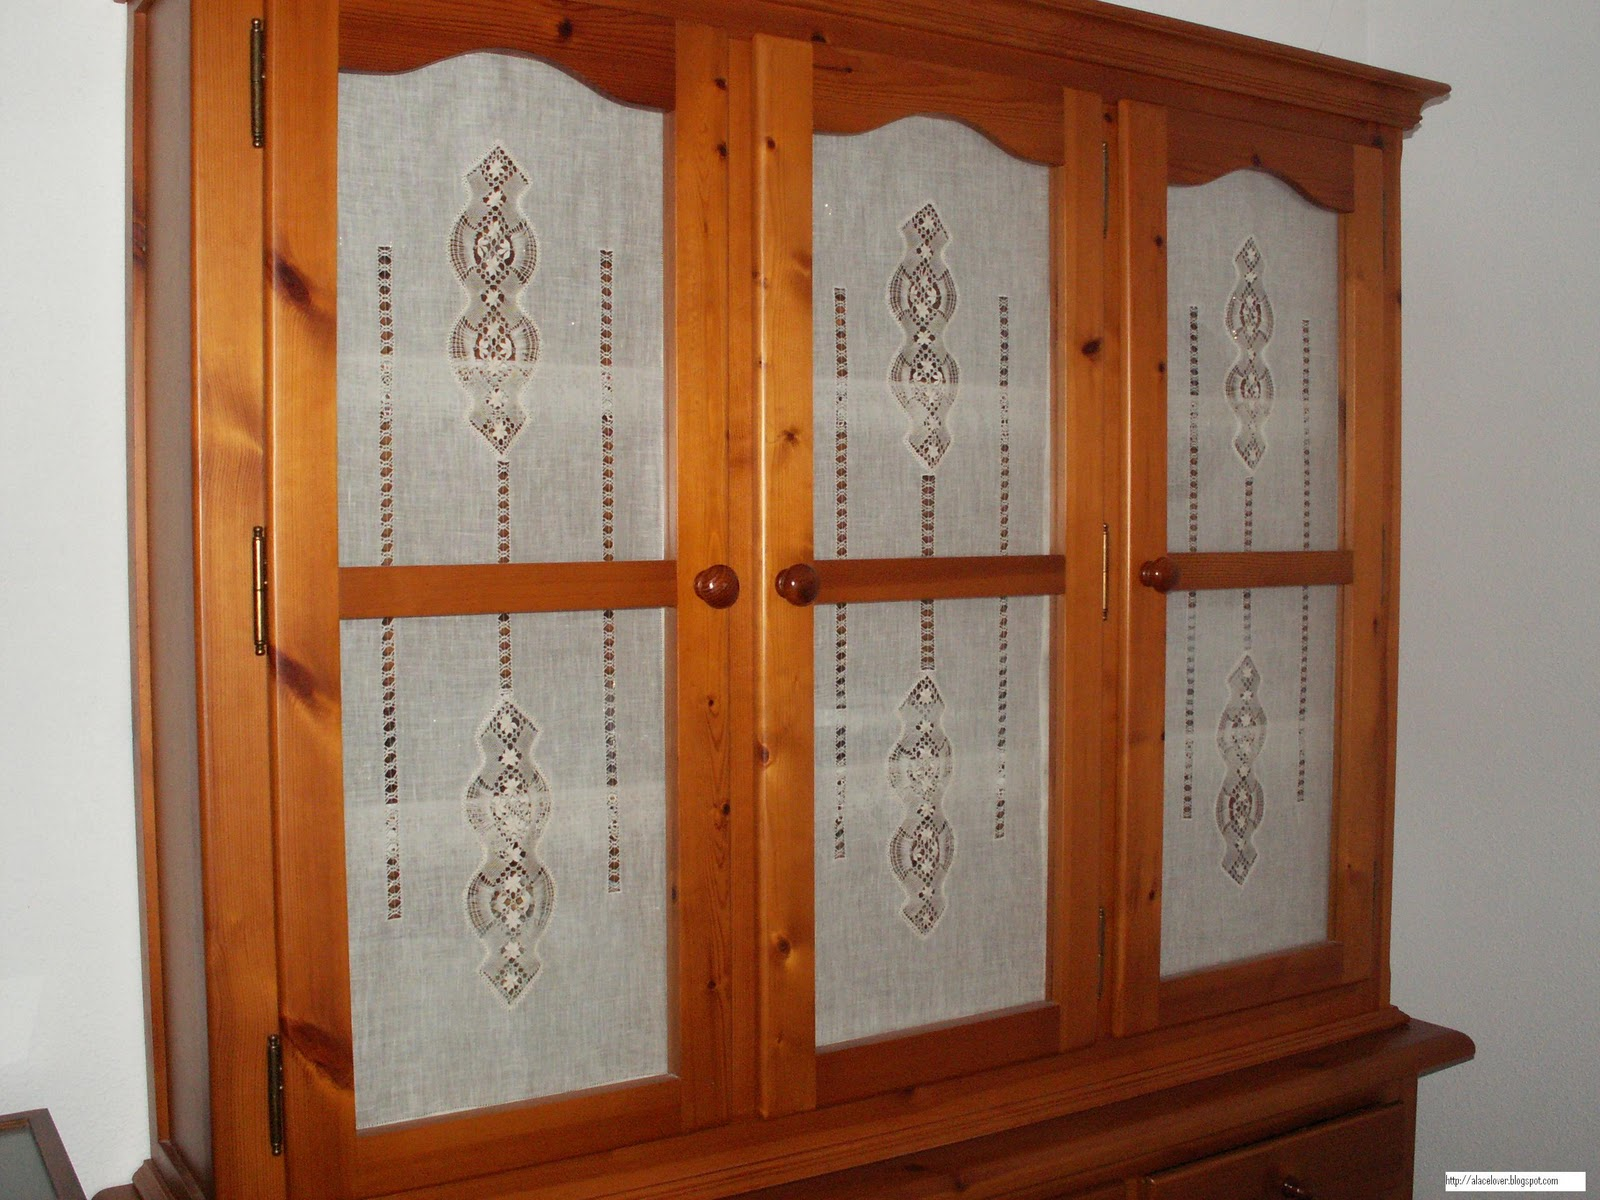 A bobbin lace lover cortinas de encaje de camari as para for Cortinas de encaje